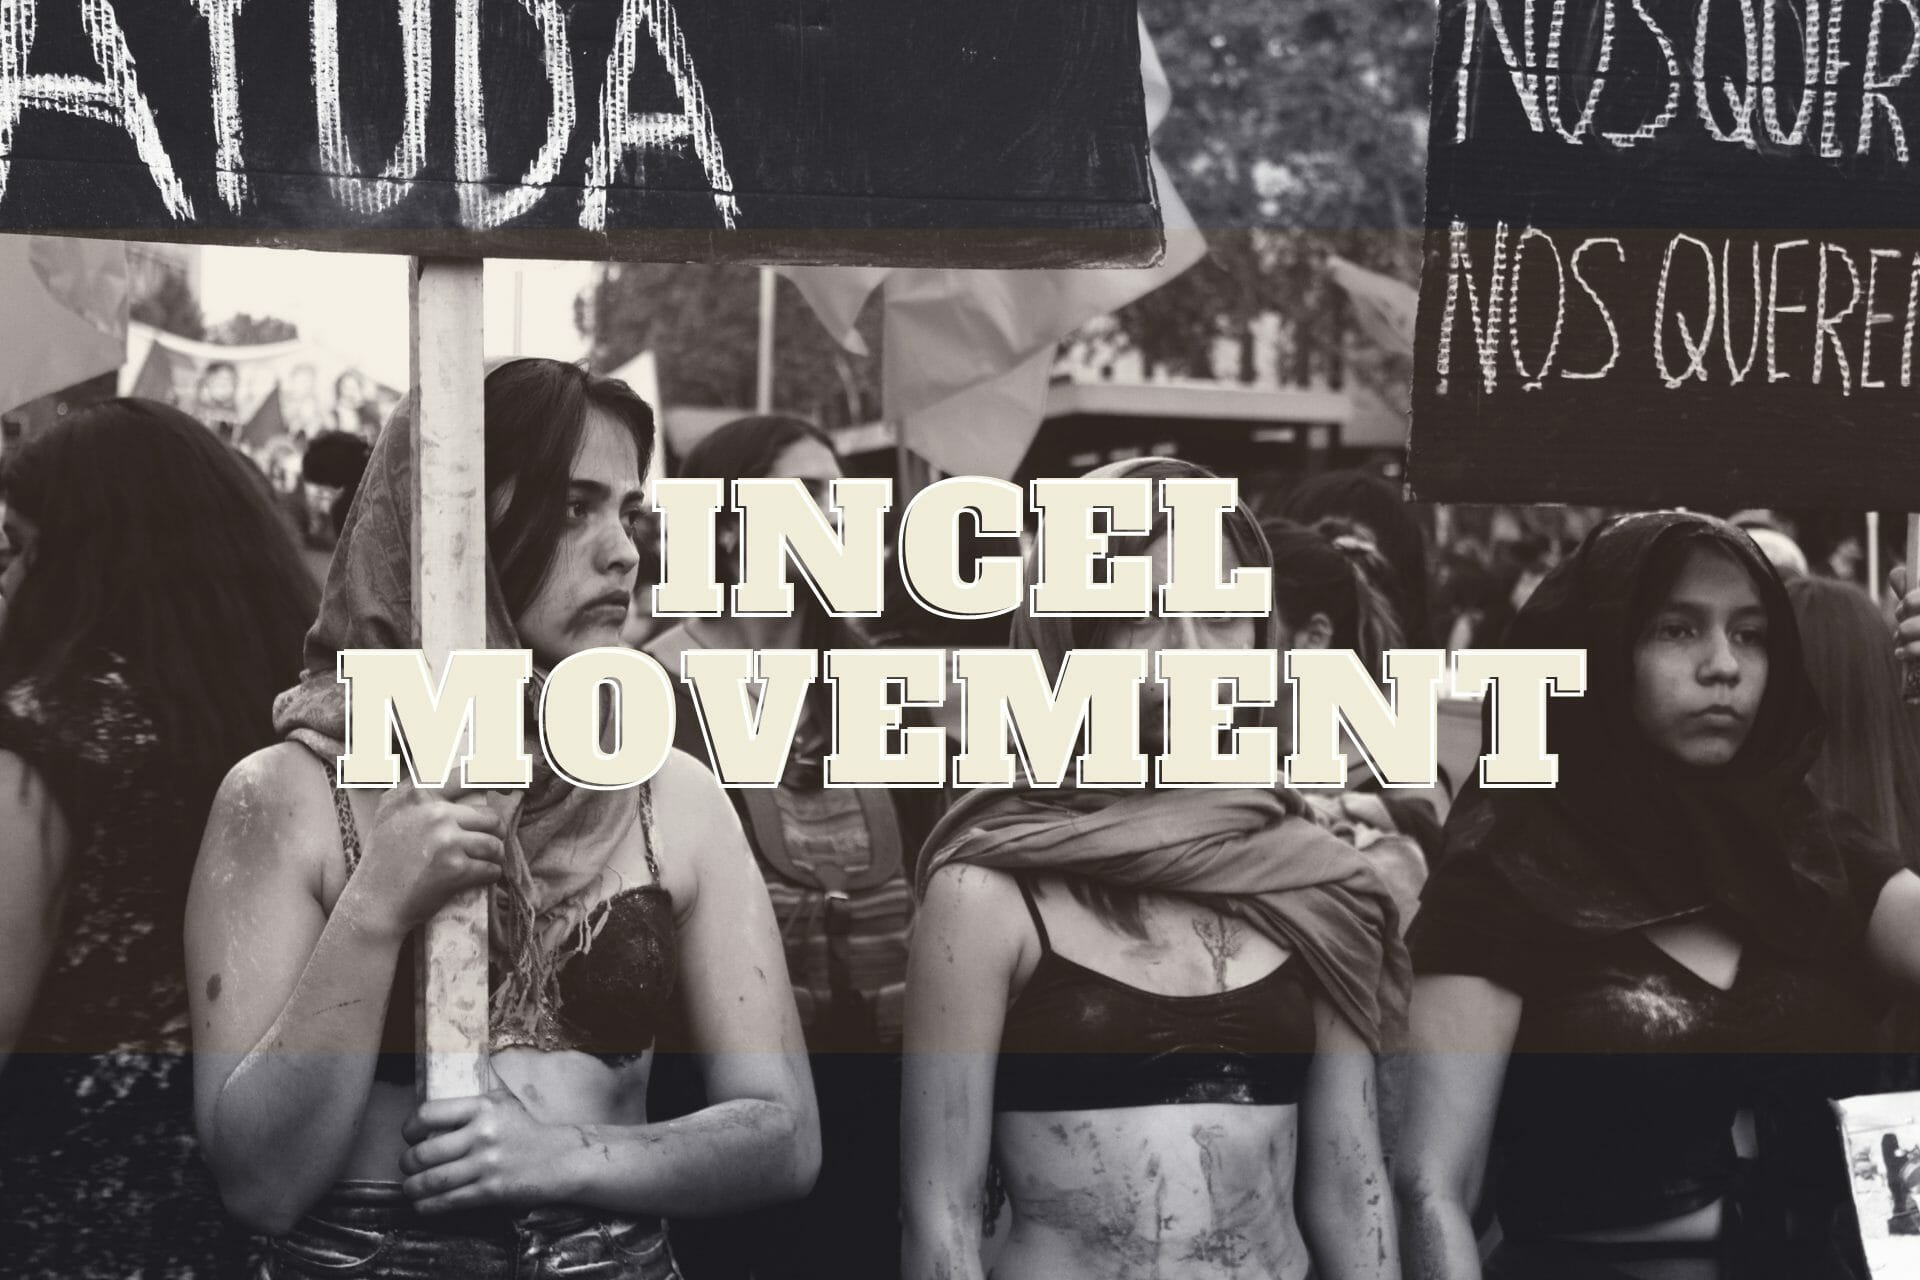 Incel Movement